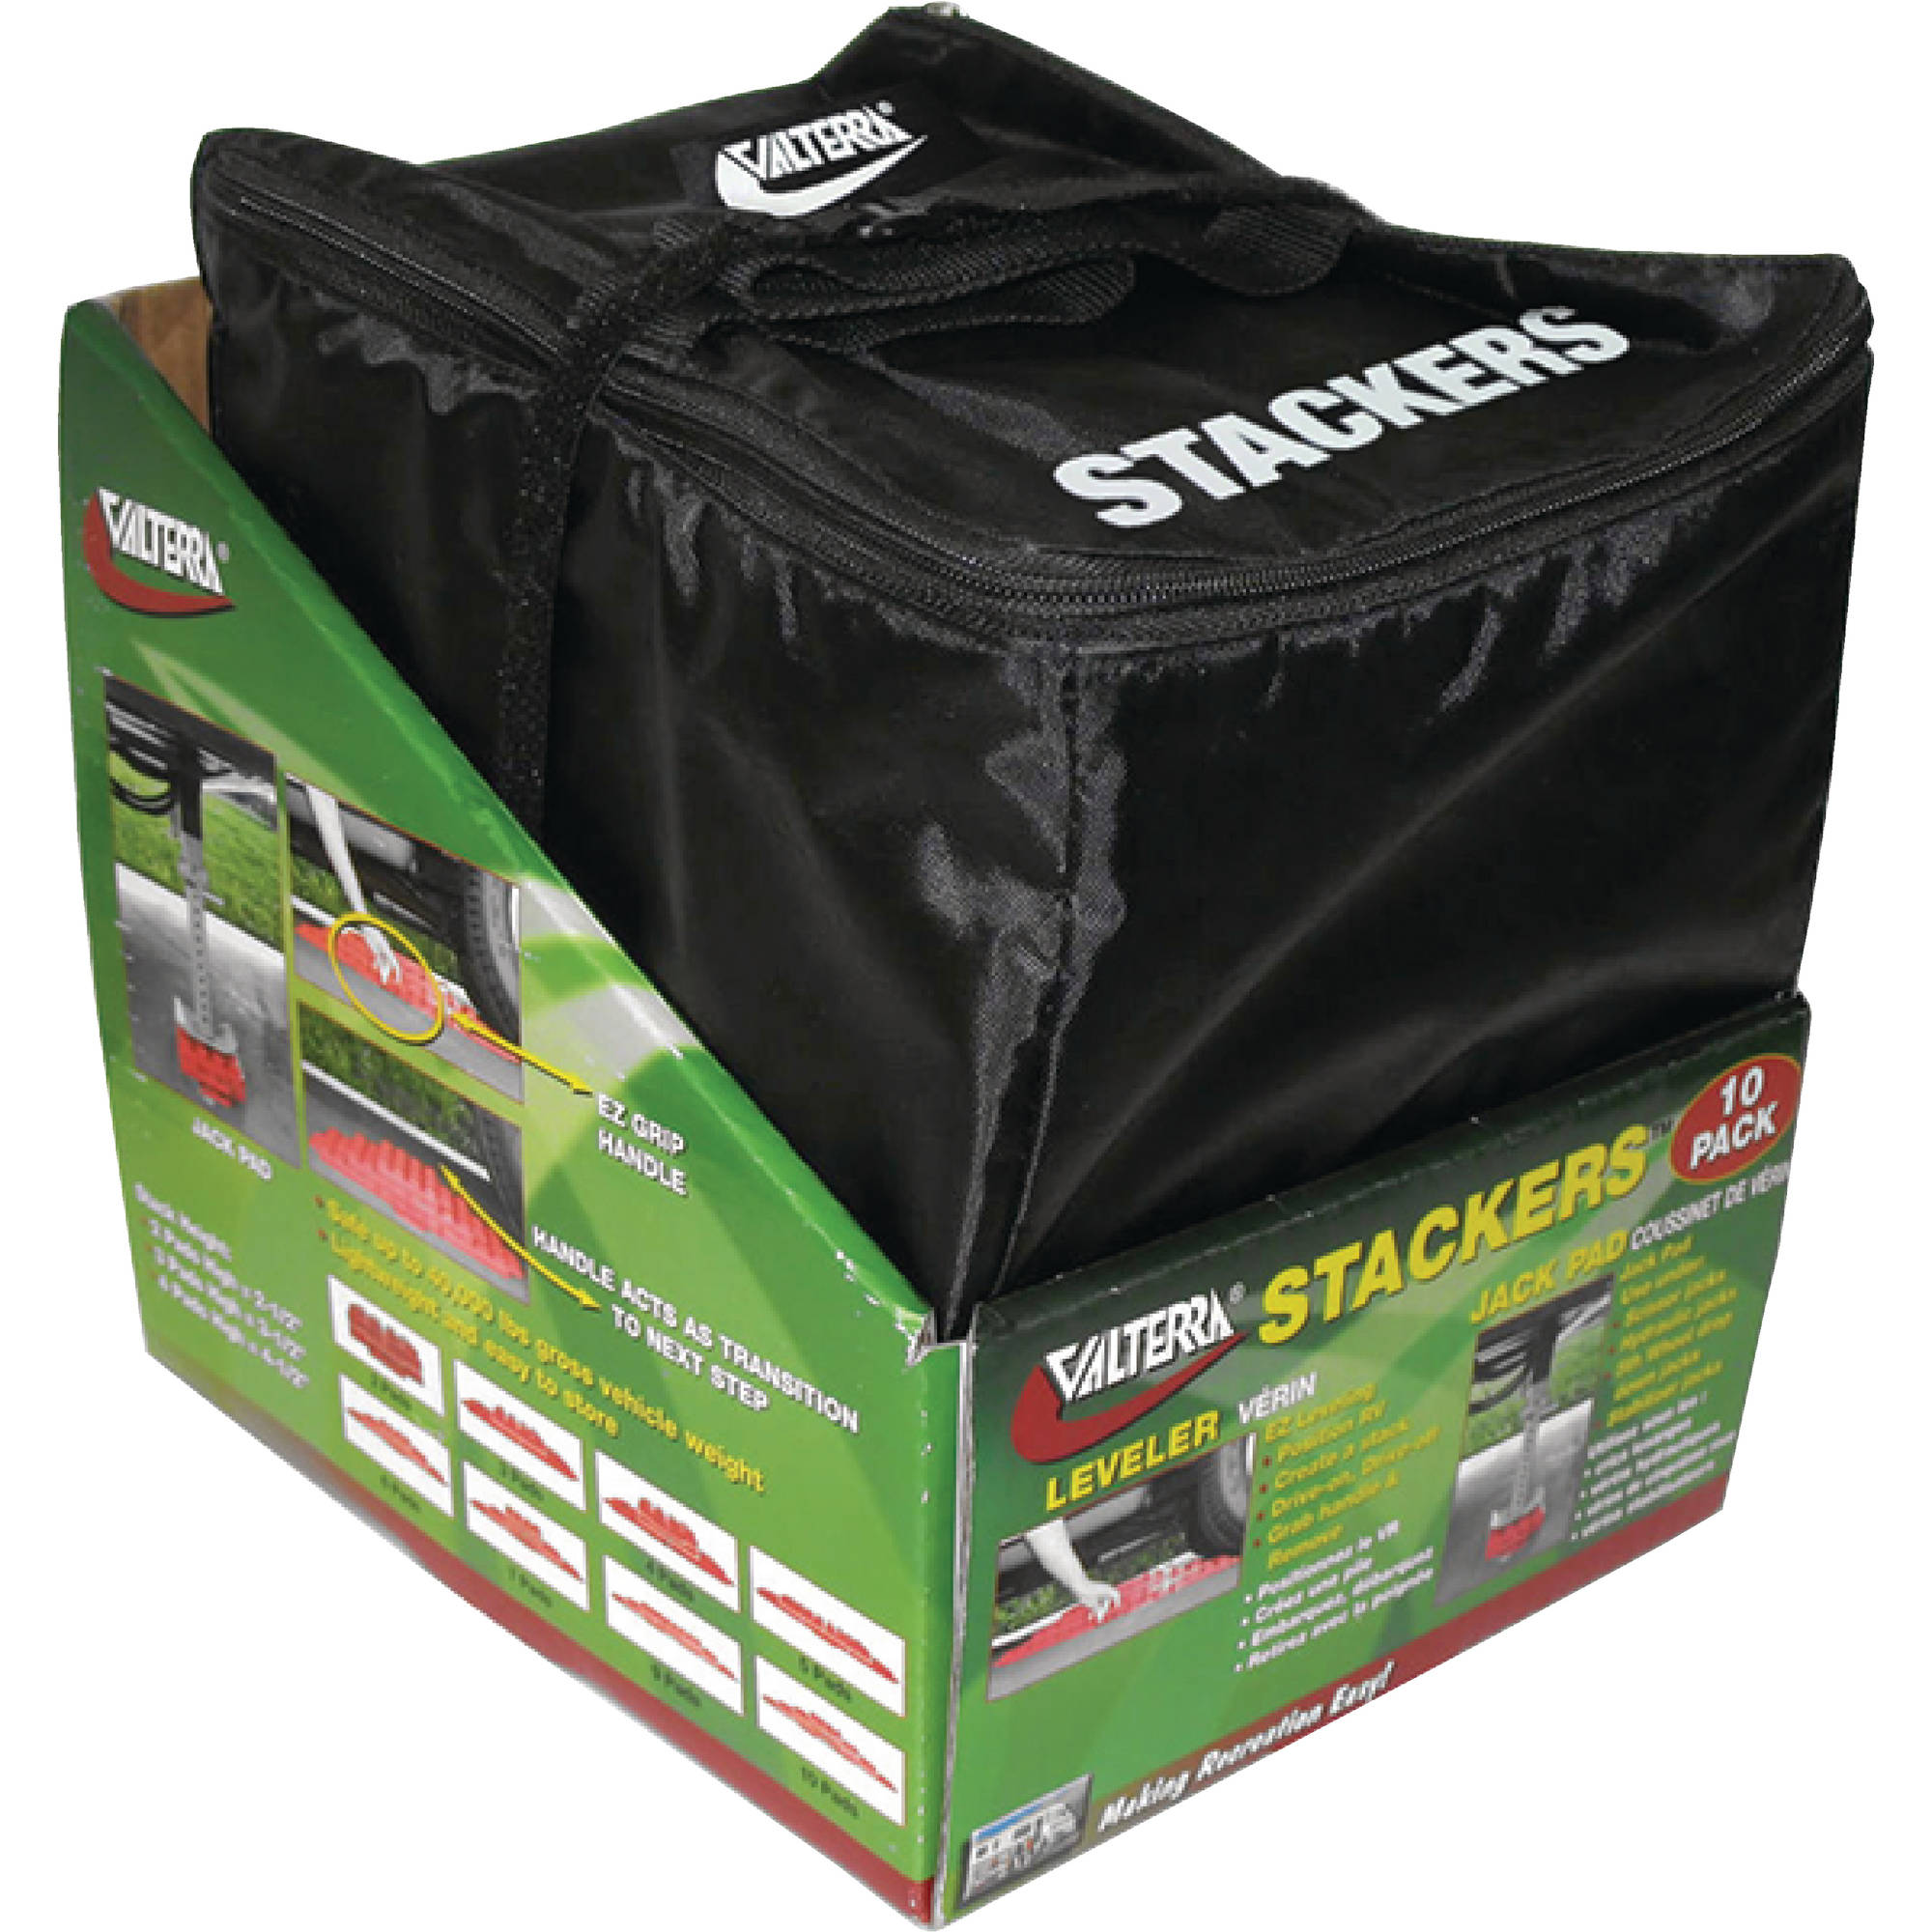 Valterra A10-0920 Stackers Leveler / Jack Pad - 10 Pack with Carry Bag